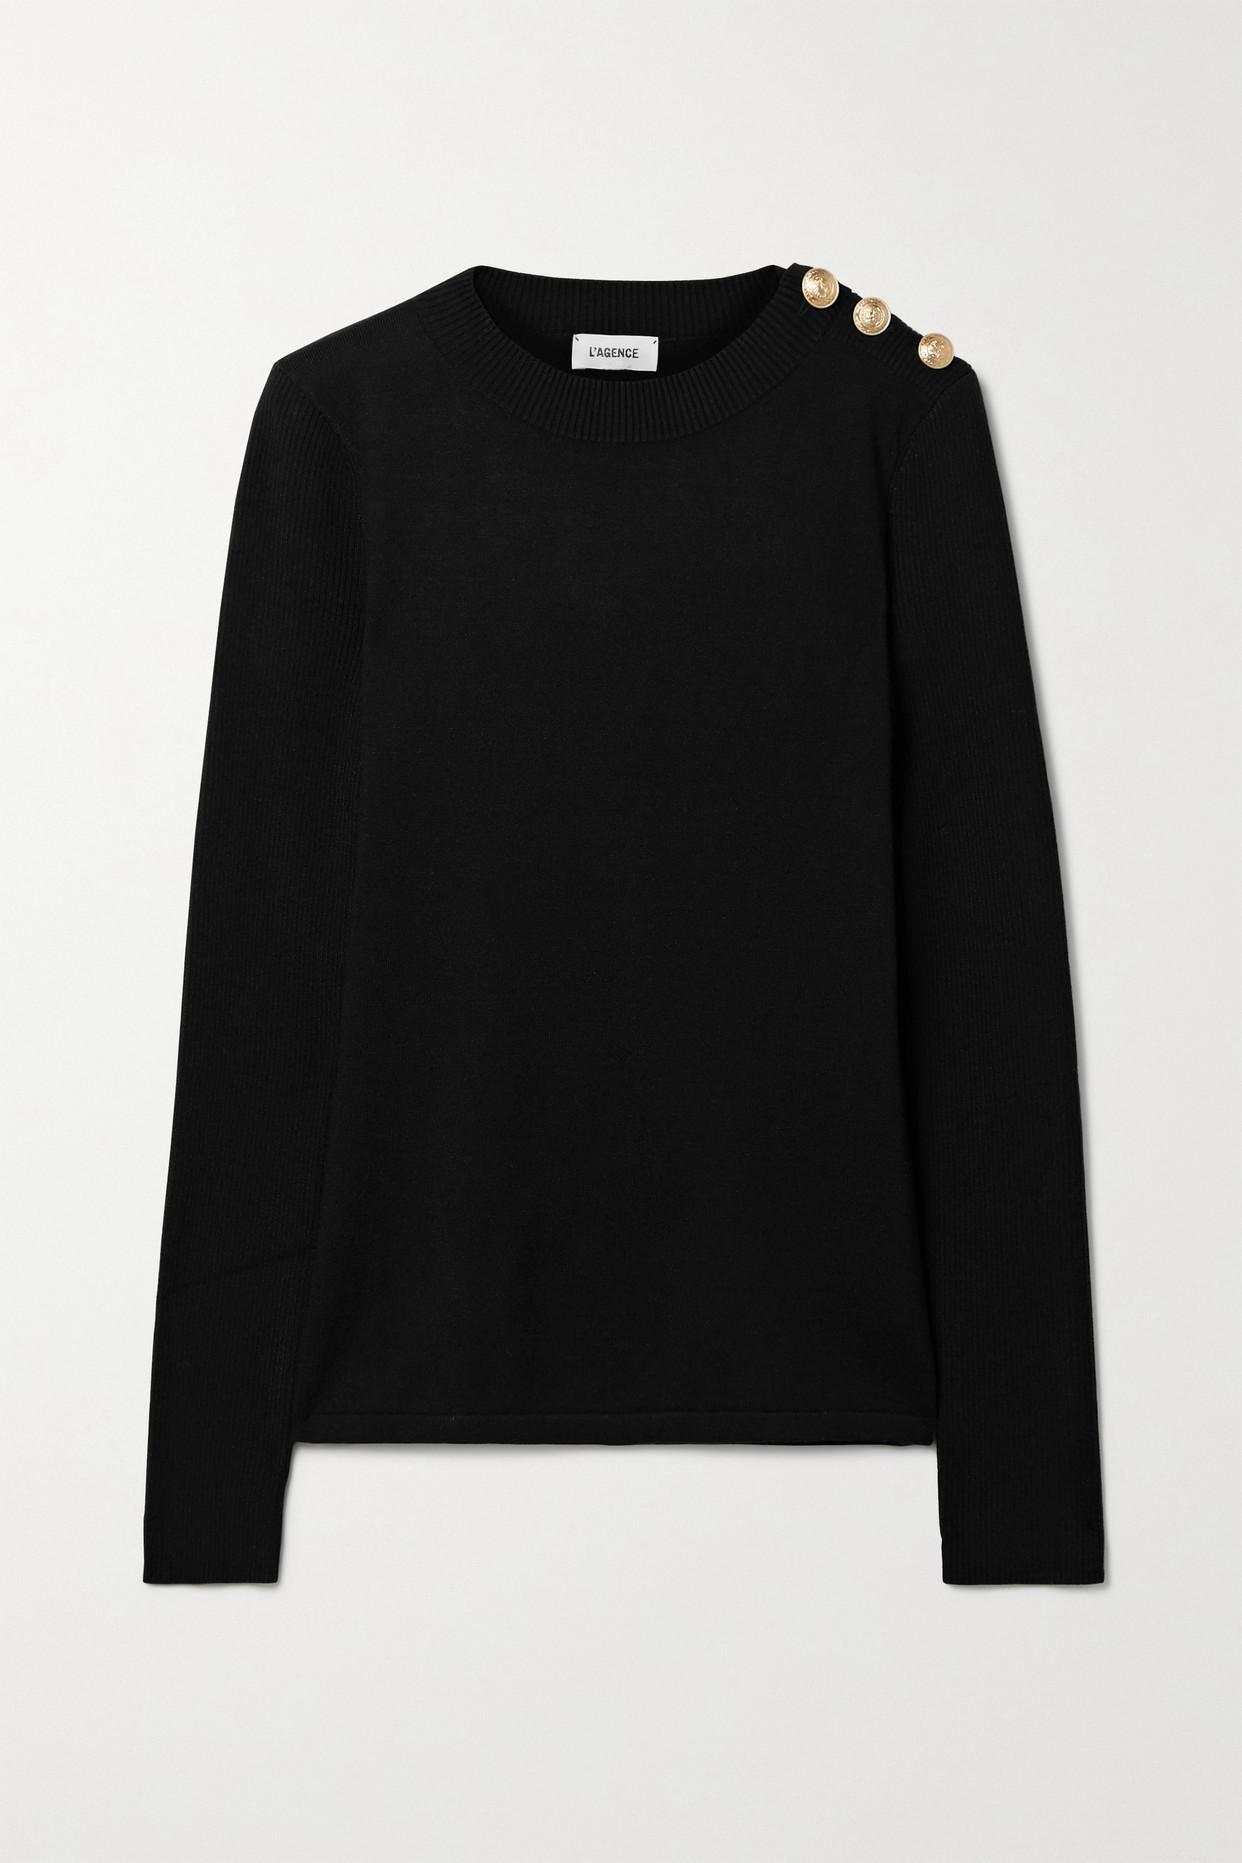 L'AGENCE - Erica Button-embellished Knitted Sweater - Black - x small